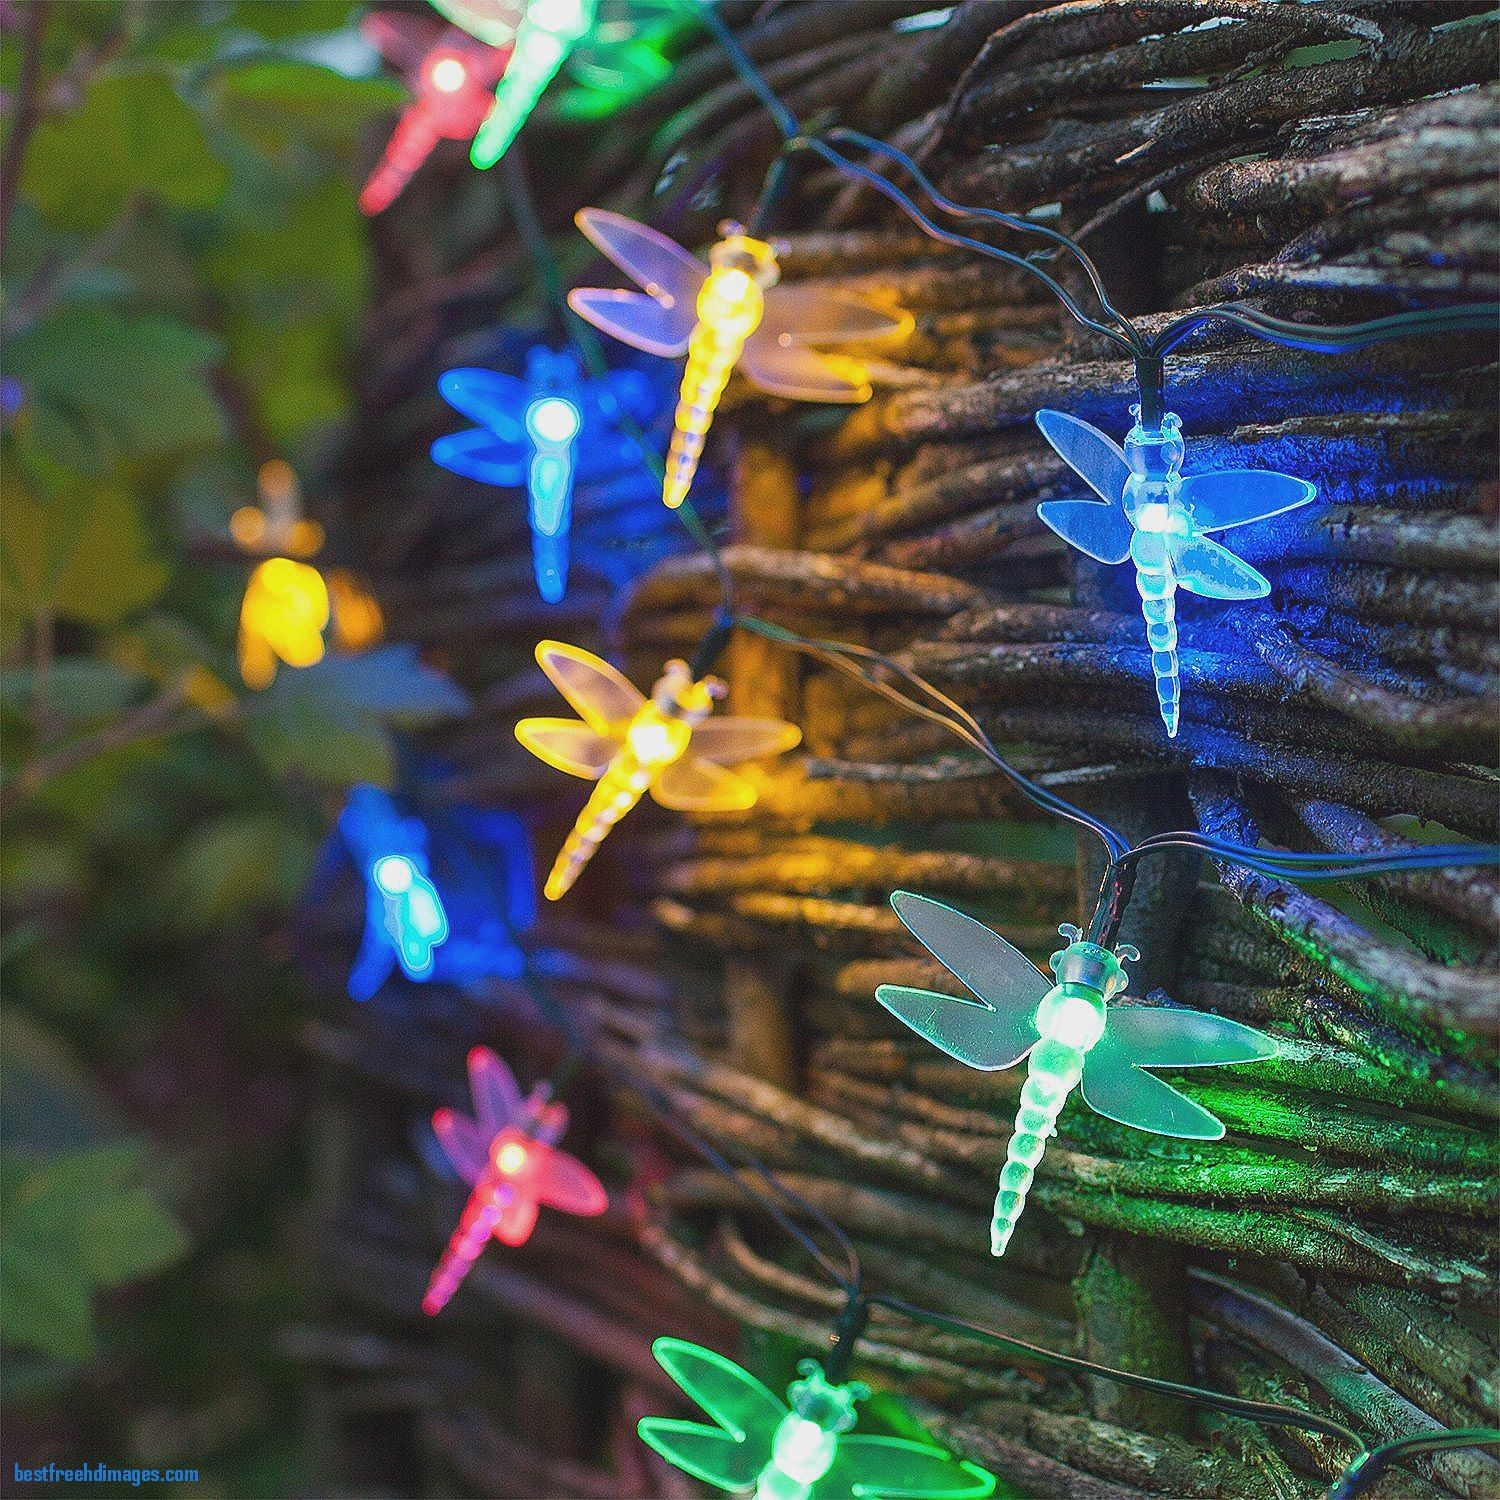 30 multi coloured led dragonfly solar garden fairy lights by solar 30 multi coloured led dragonfly solar garden fairy lights by solar christmas lights sale australia remarkable aloadofball Images